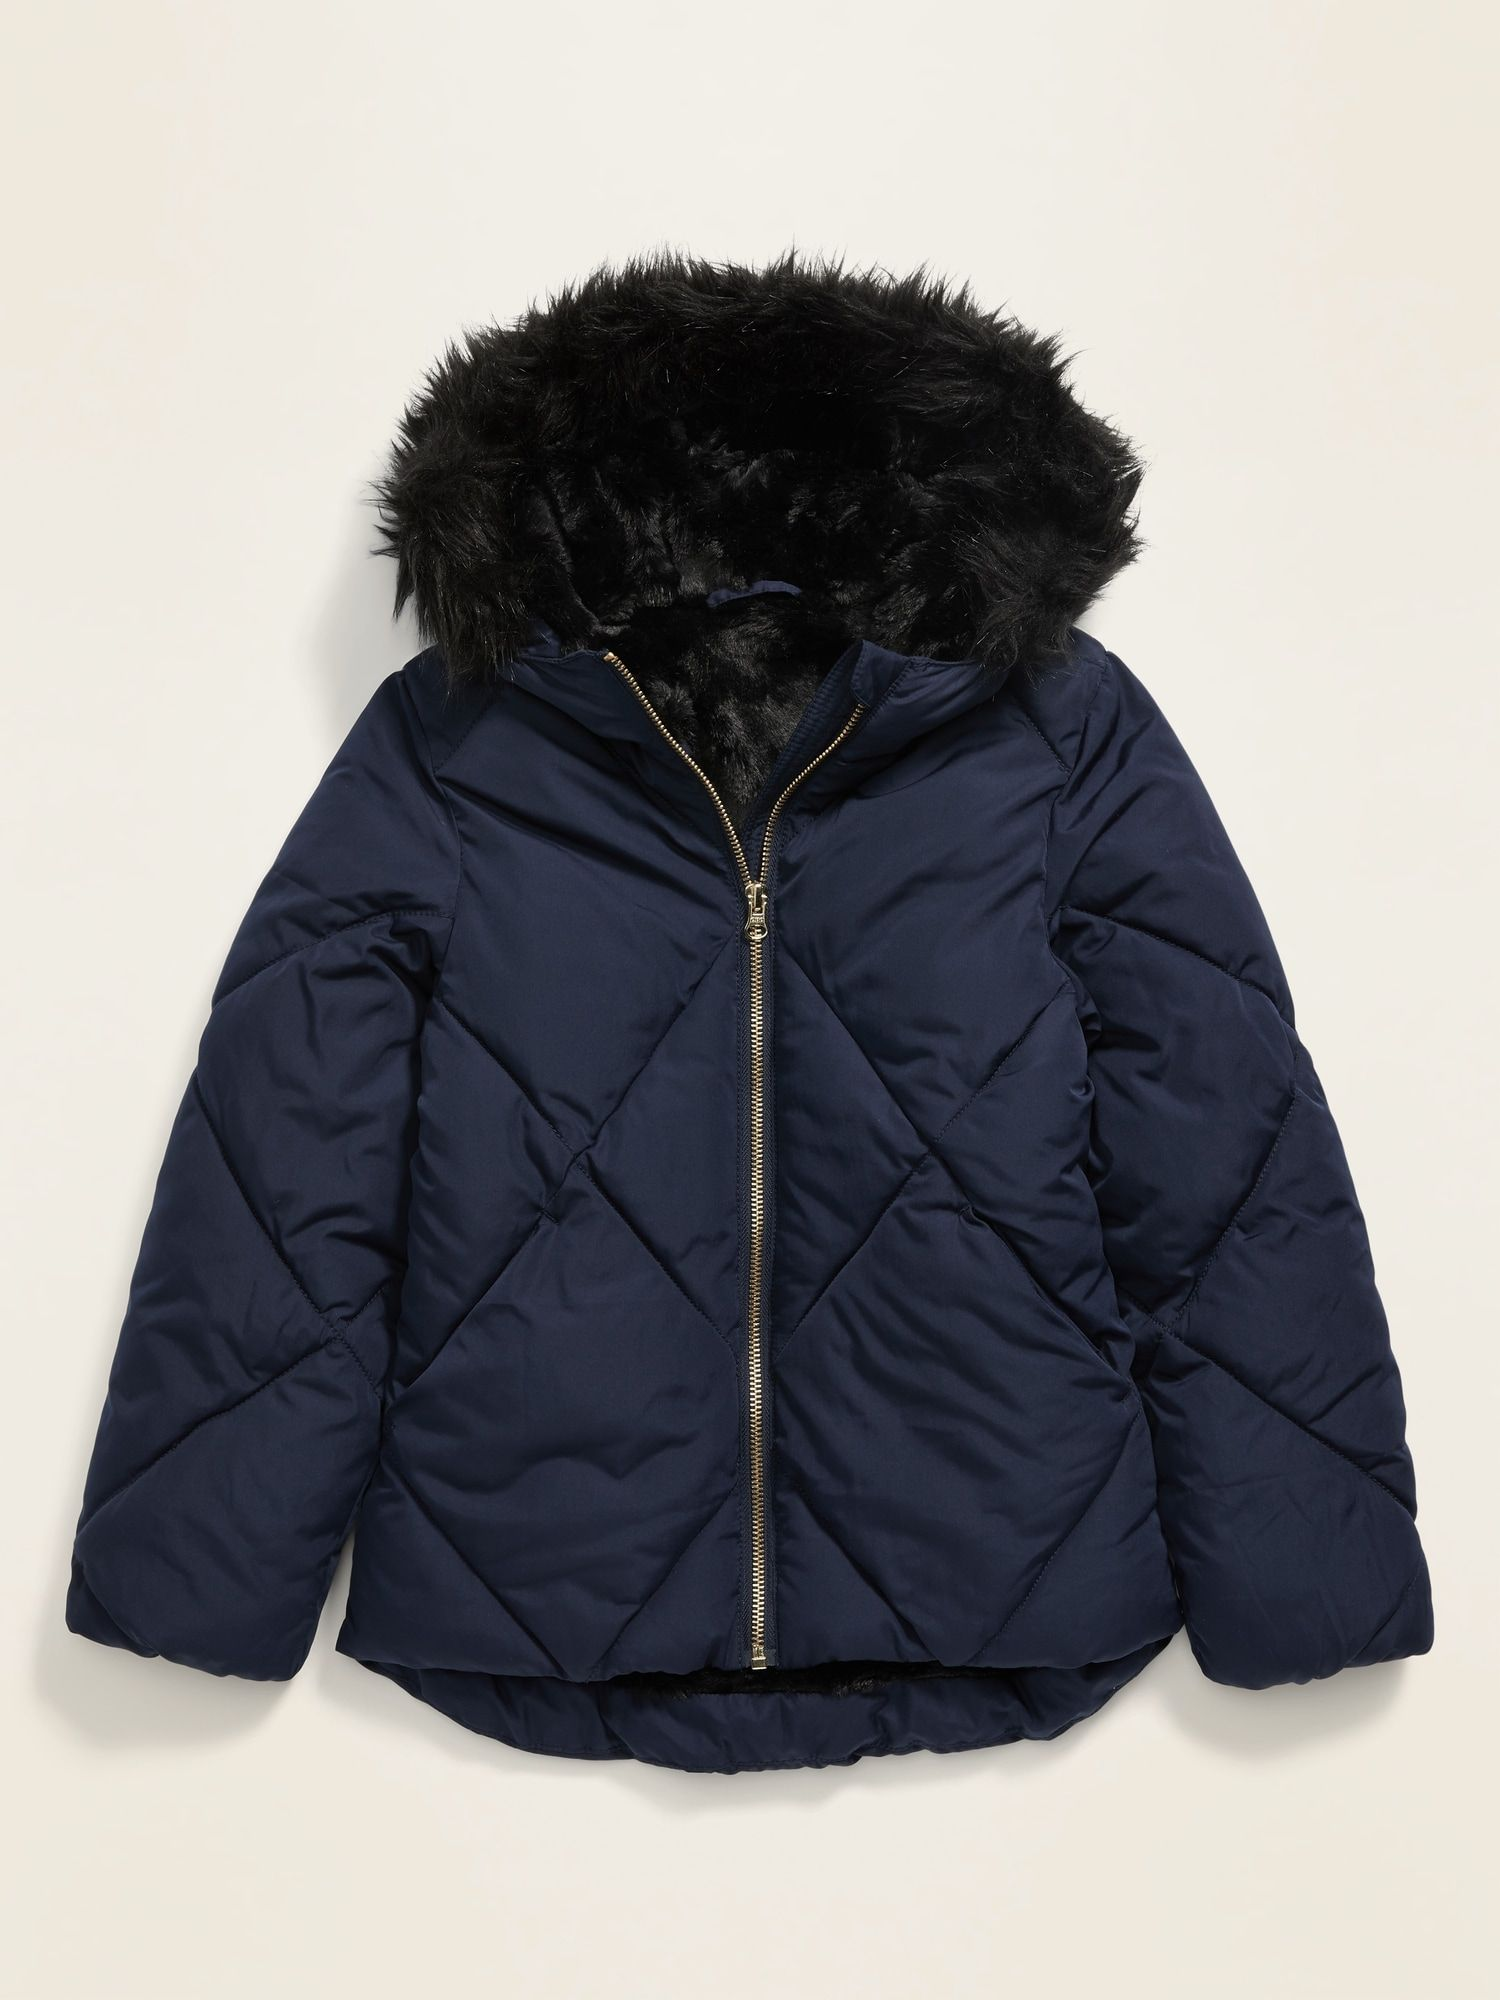 Old Navy Kids Frost Free Faux Fur Lined Hooded Puffer Jacket Lost At Sea Navy Size Xs Girls Jacket Womens Casual Outfits Faux Fur Hood [ 2000 x 1500 Pixel ]